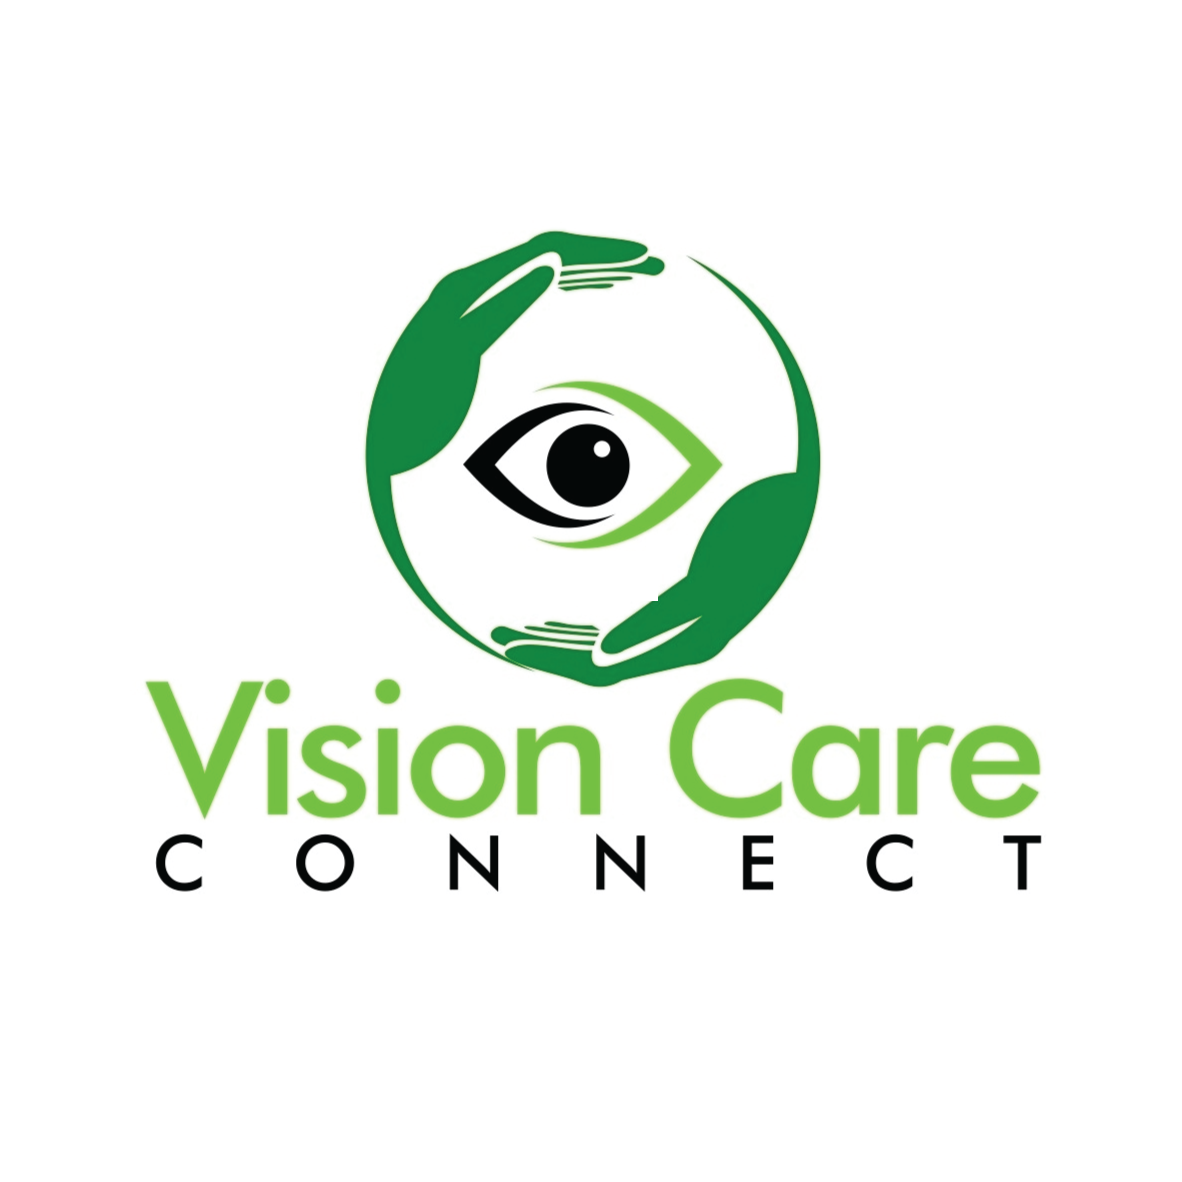 Vision Care Connect